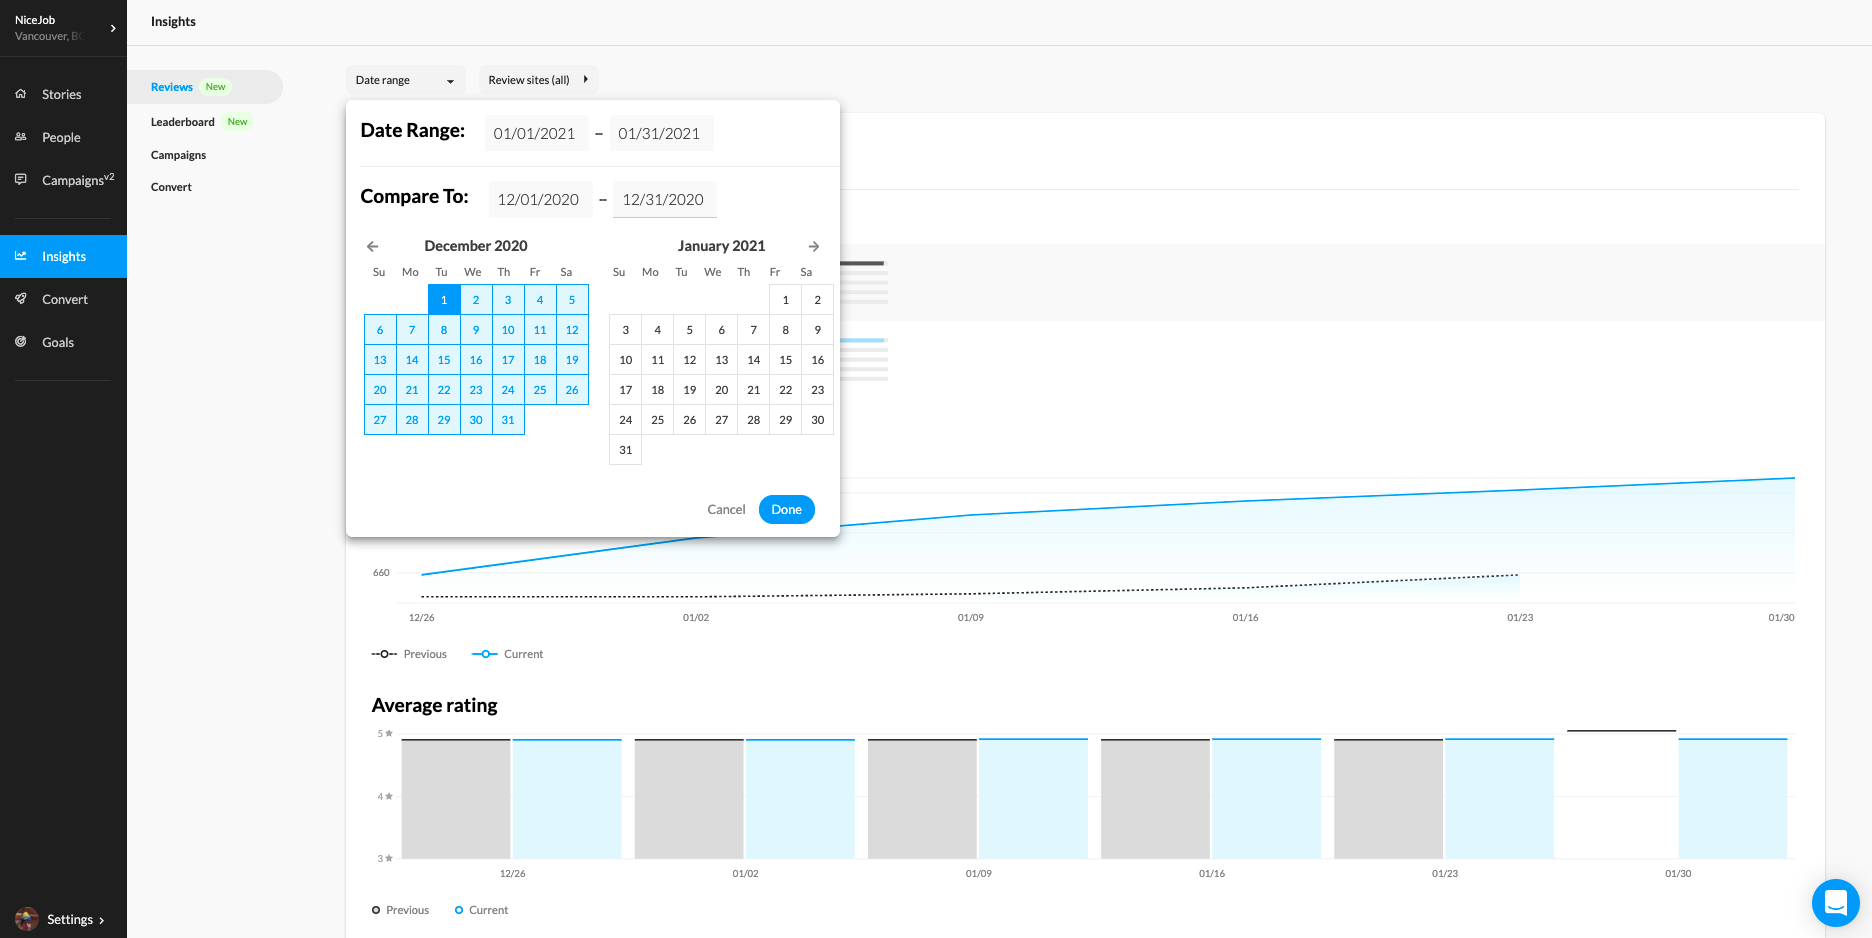 Screen shot of NiceJob app, compare time frame in review insights